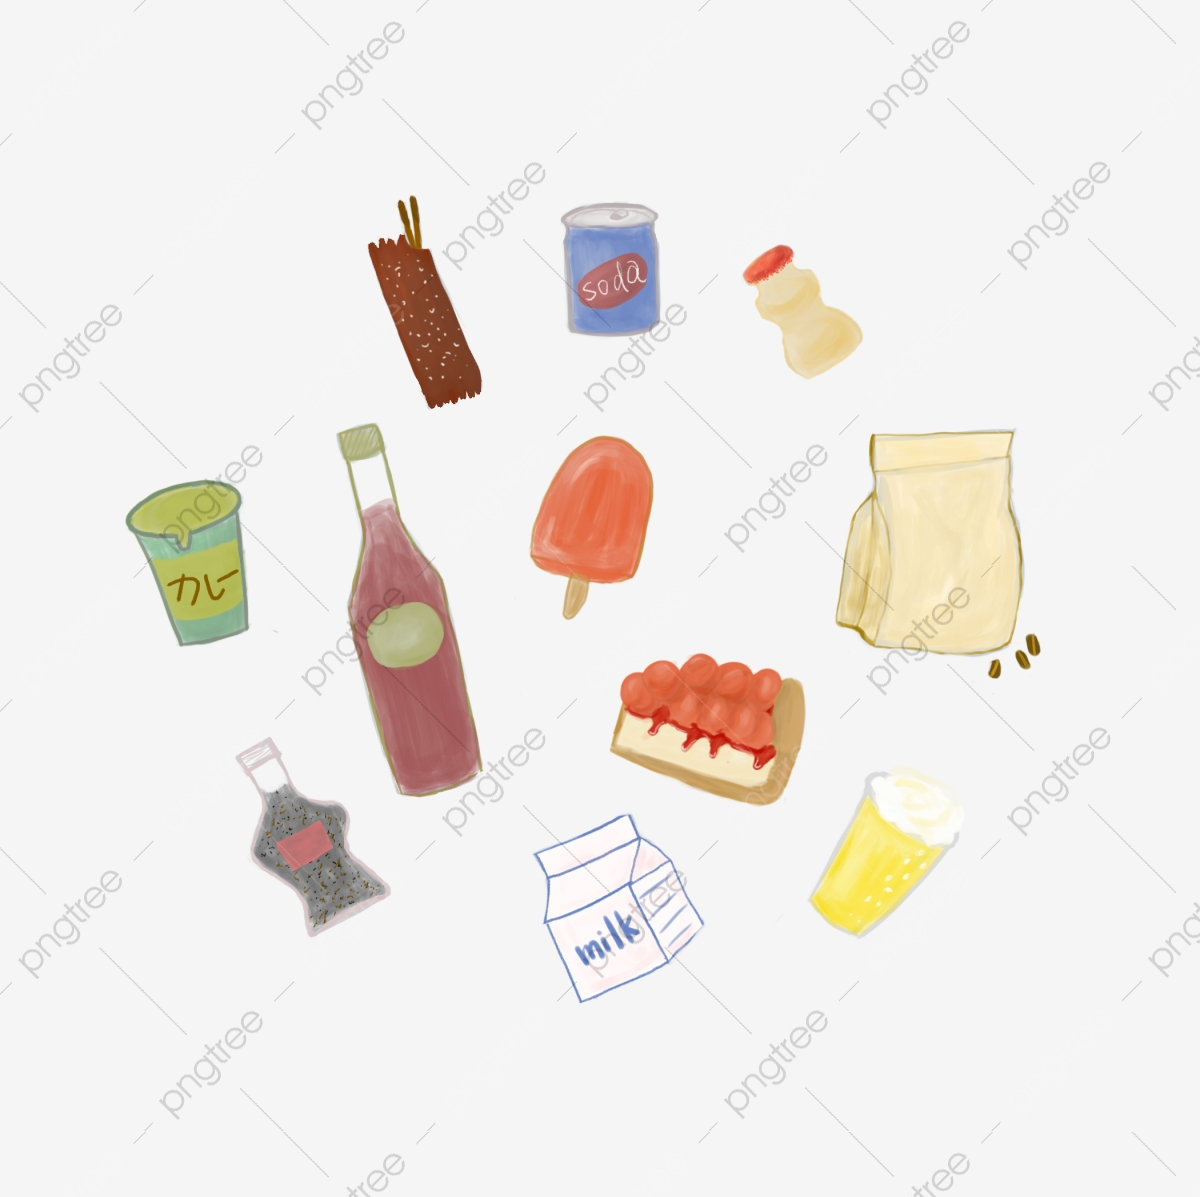 hight resolution of commercial use resource upgrade to premium plan and get license authorization upgradenow italian food food clipart